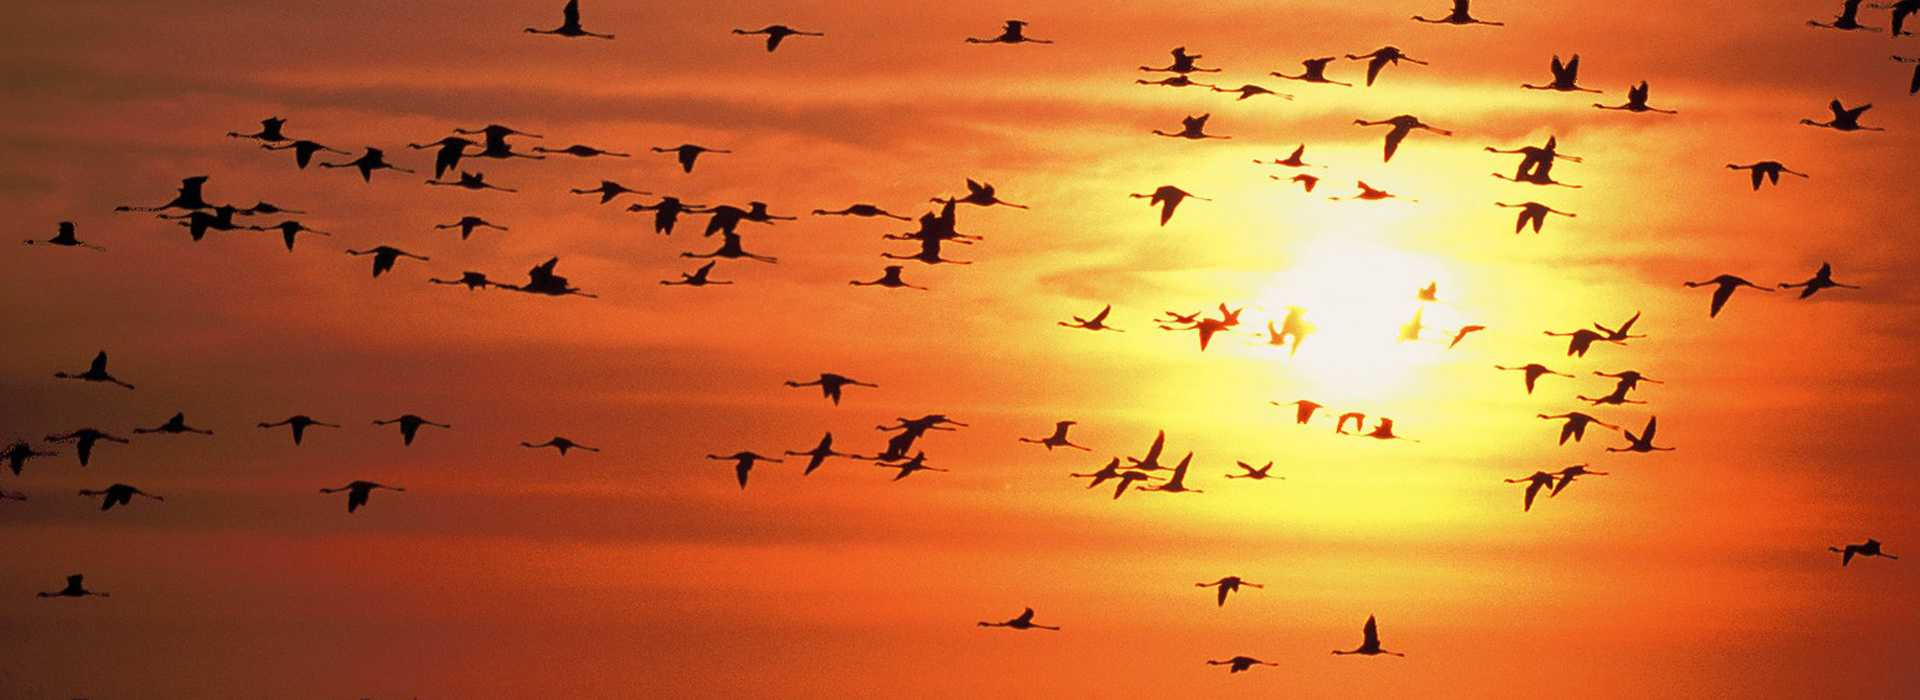 Flock Of Flying Flamingos At Sunset